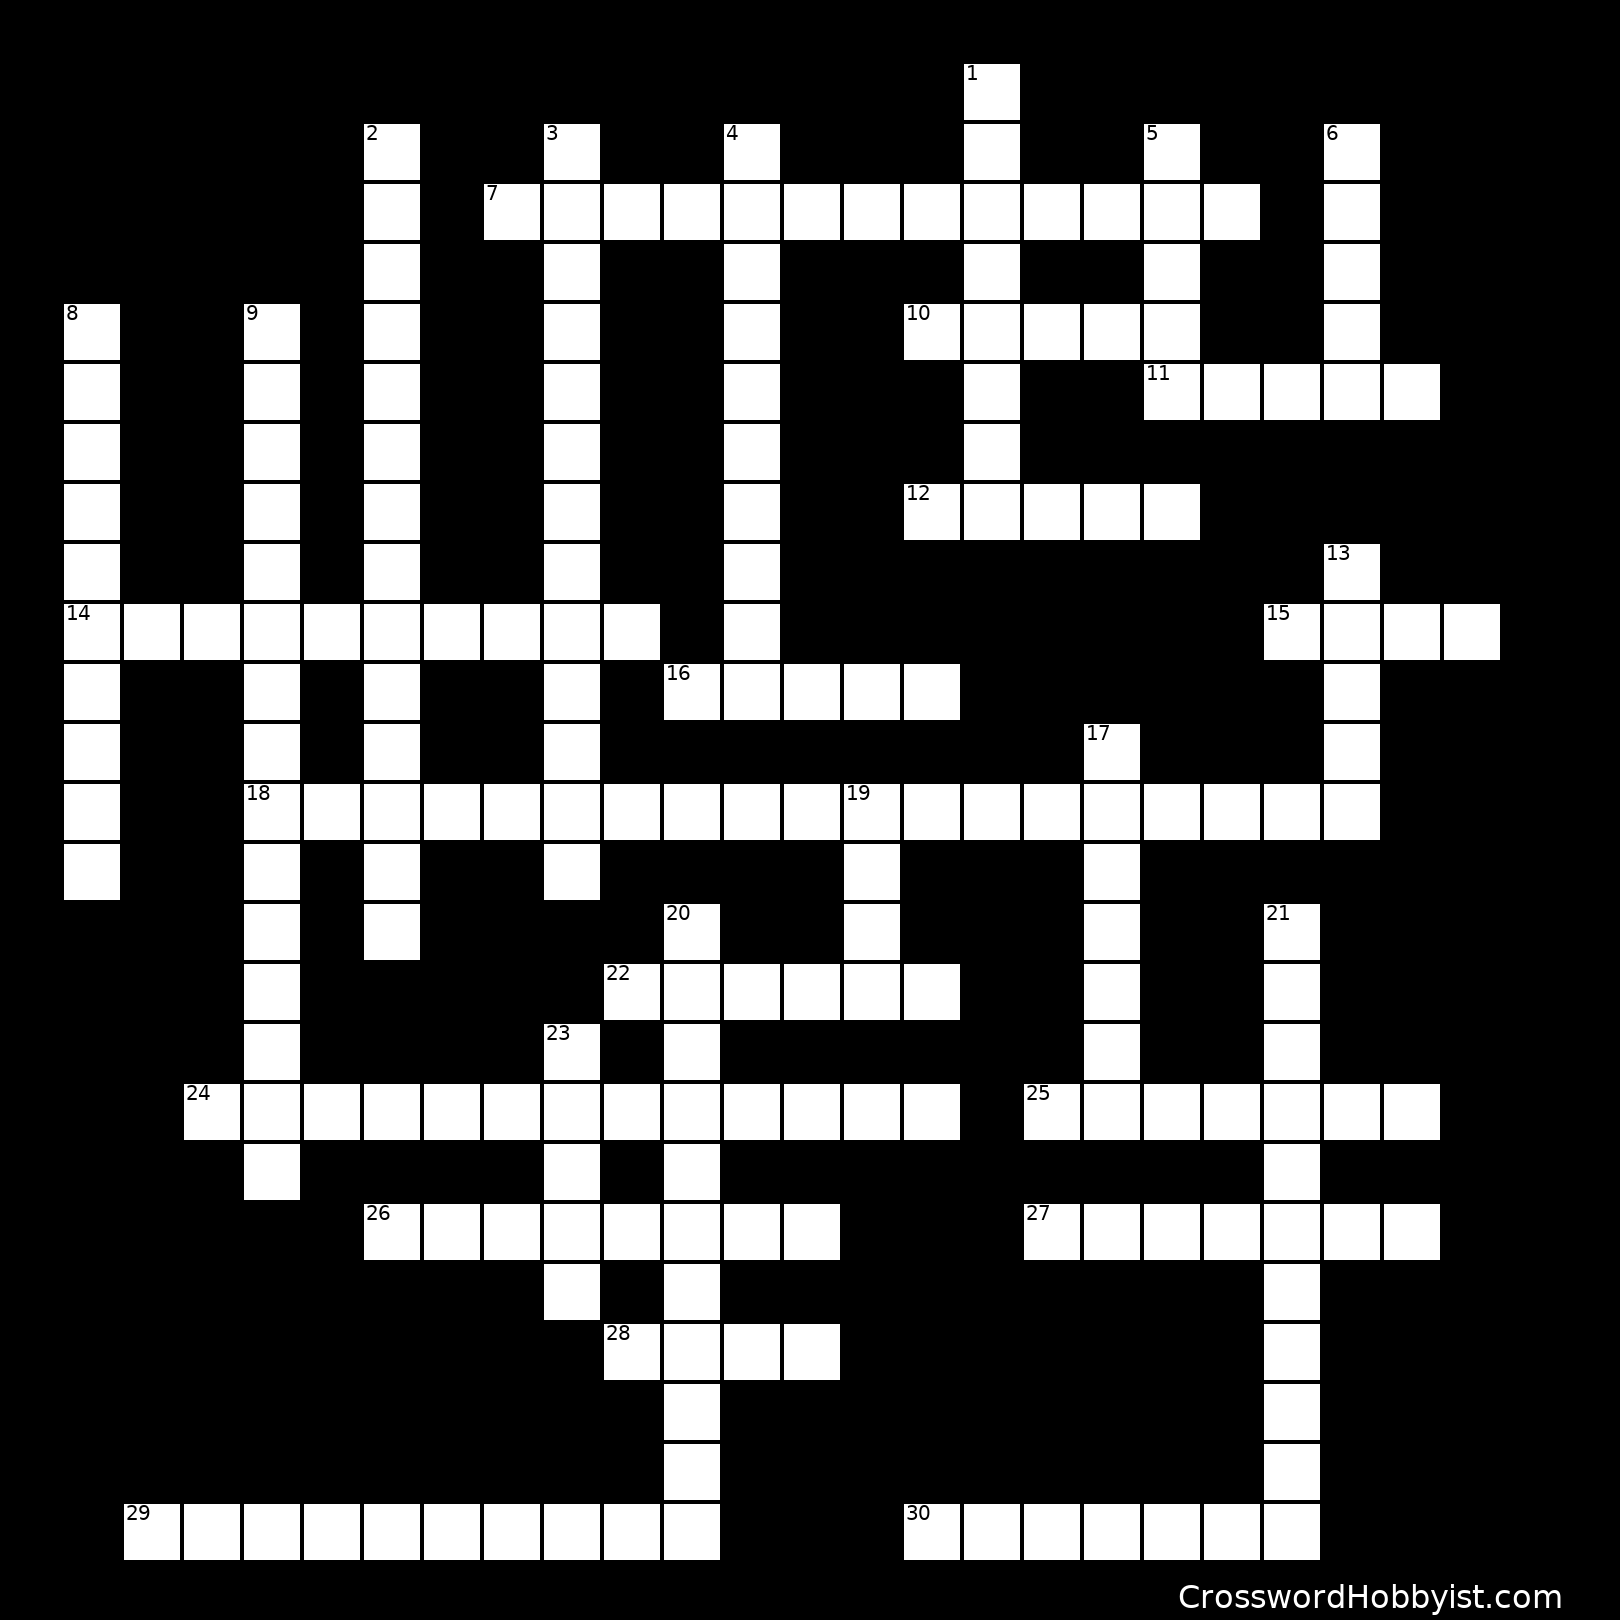 Simple Machines Crossword Puzzle